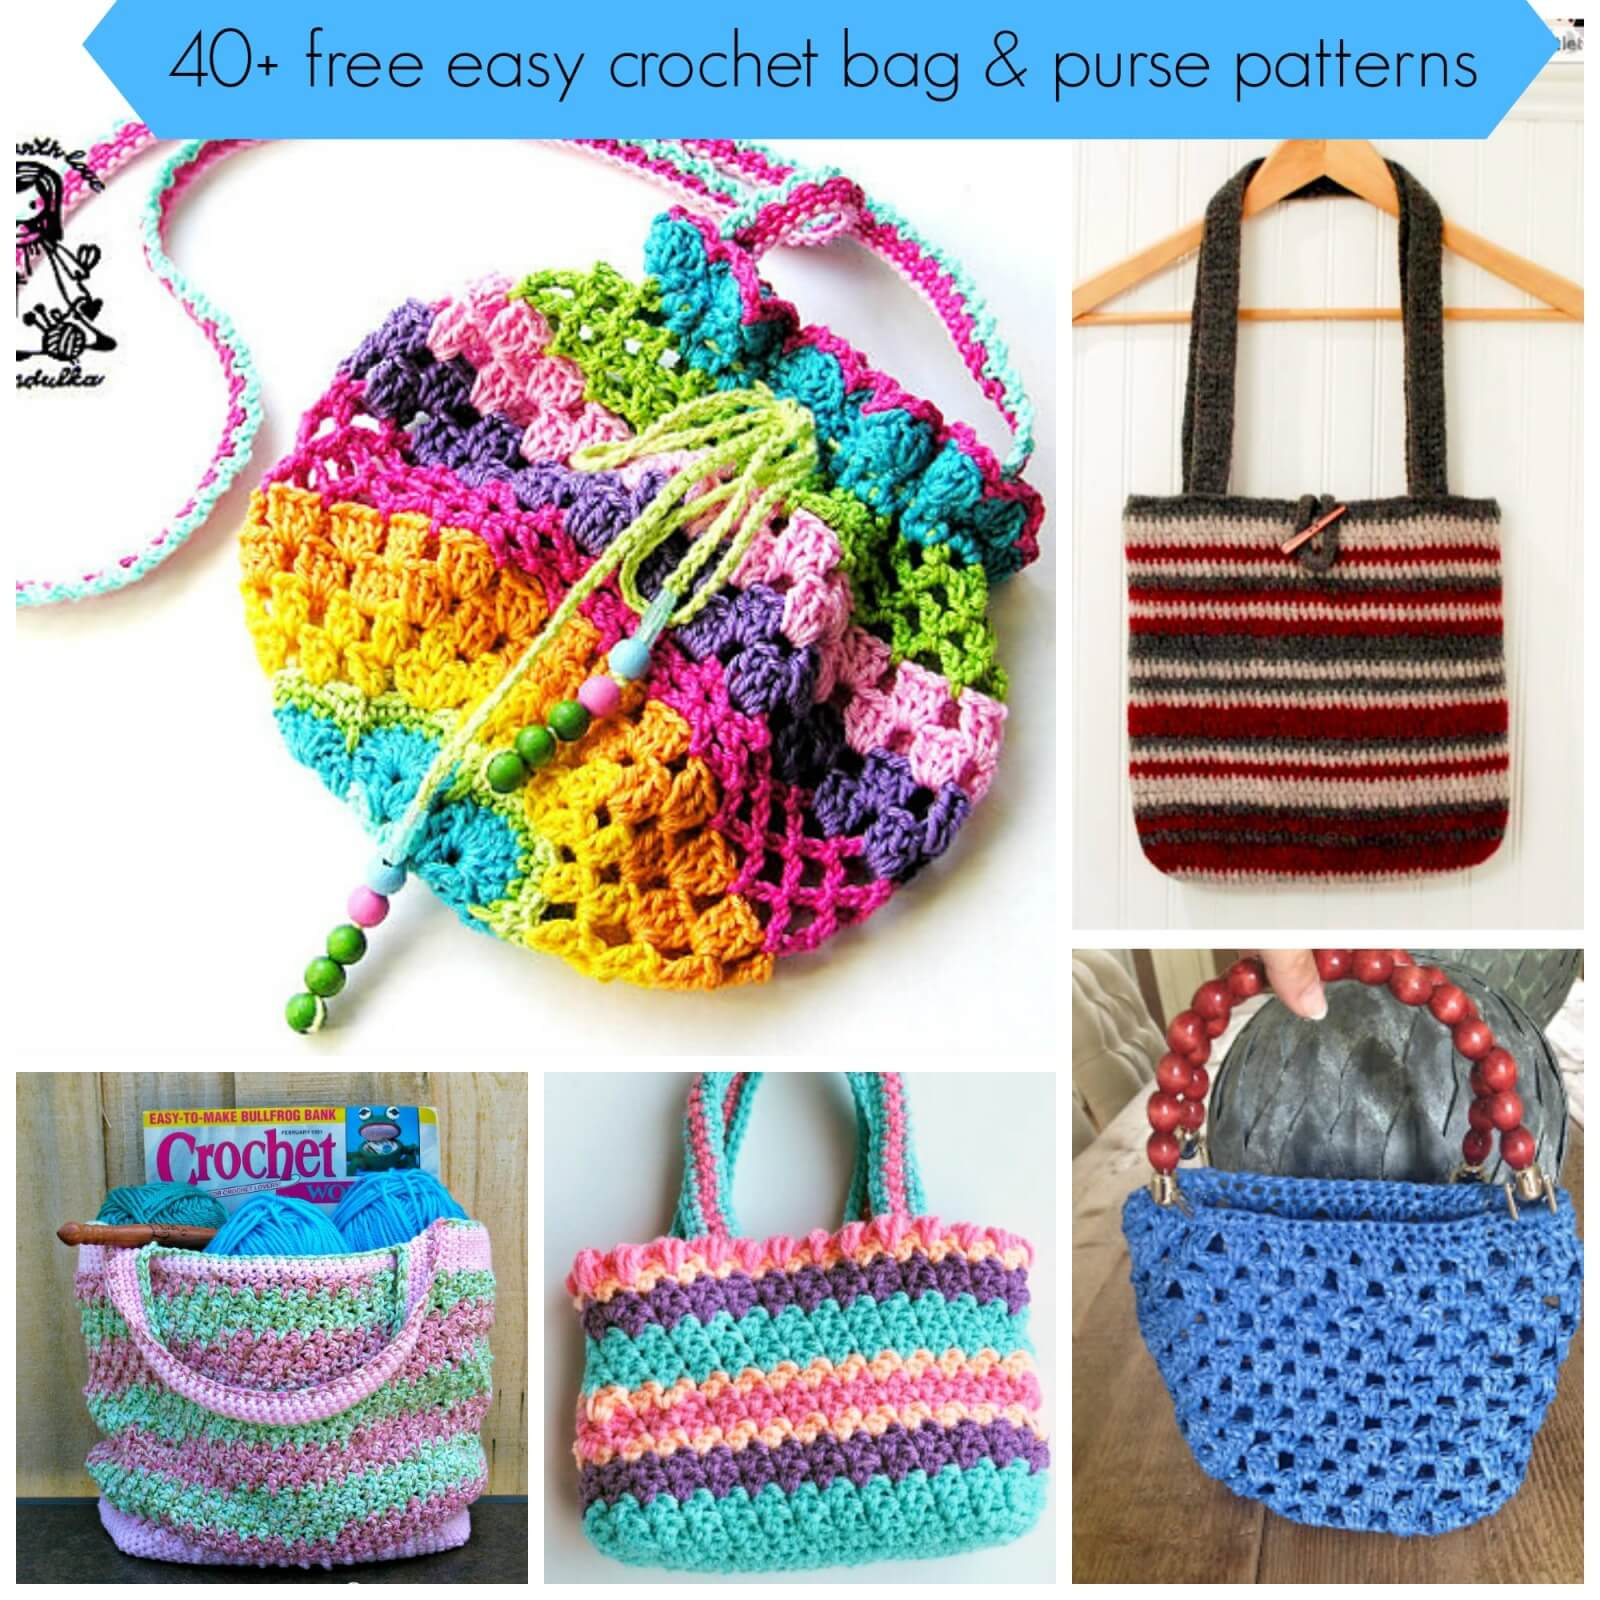 40 Free Easy Crochet Bag Purse Patterns